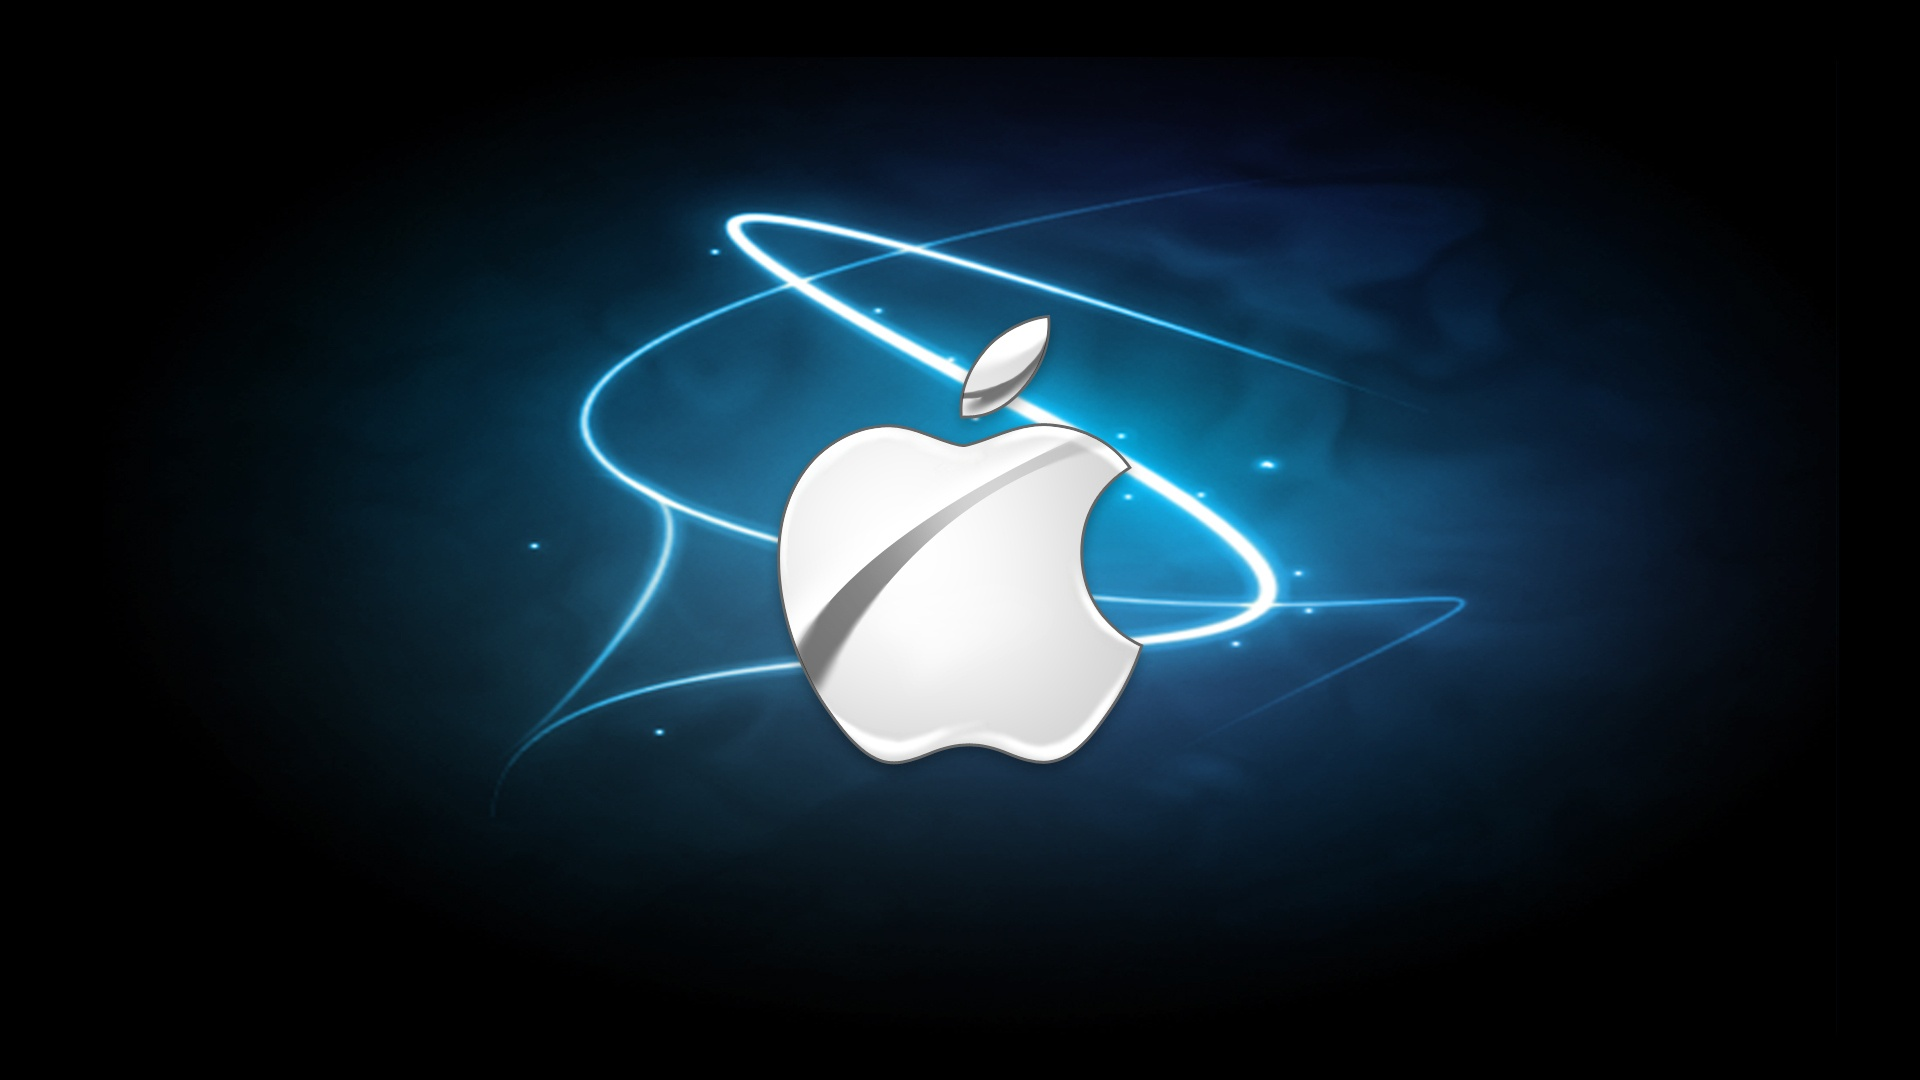 Amazing-Apple-Logo-Bing-images-wallpaper-wp3402290